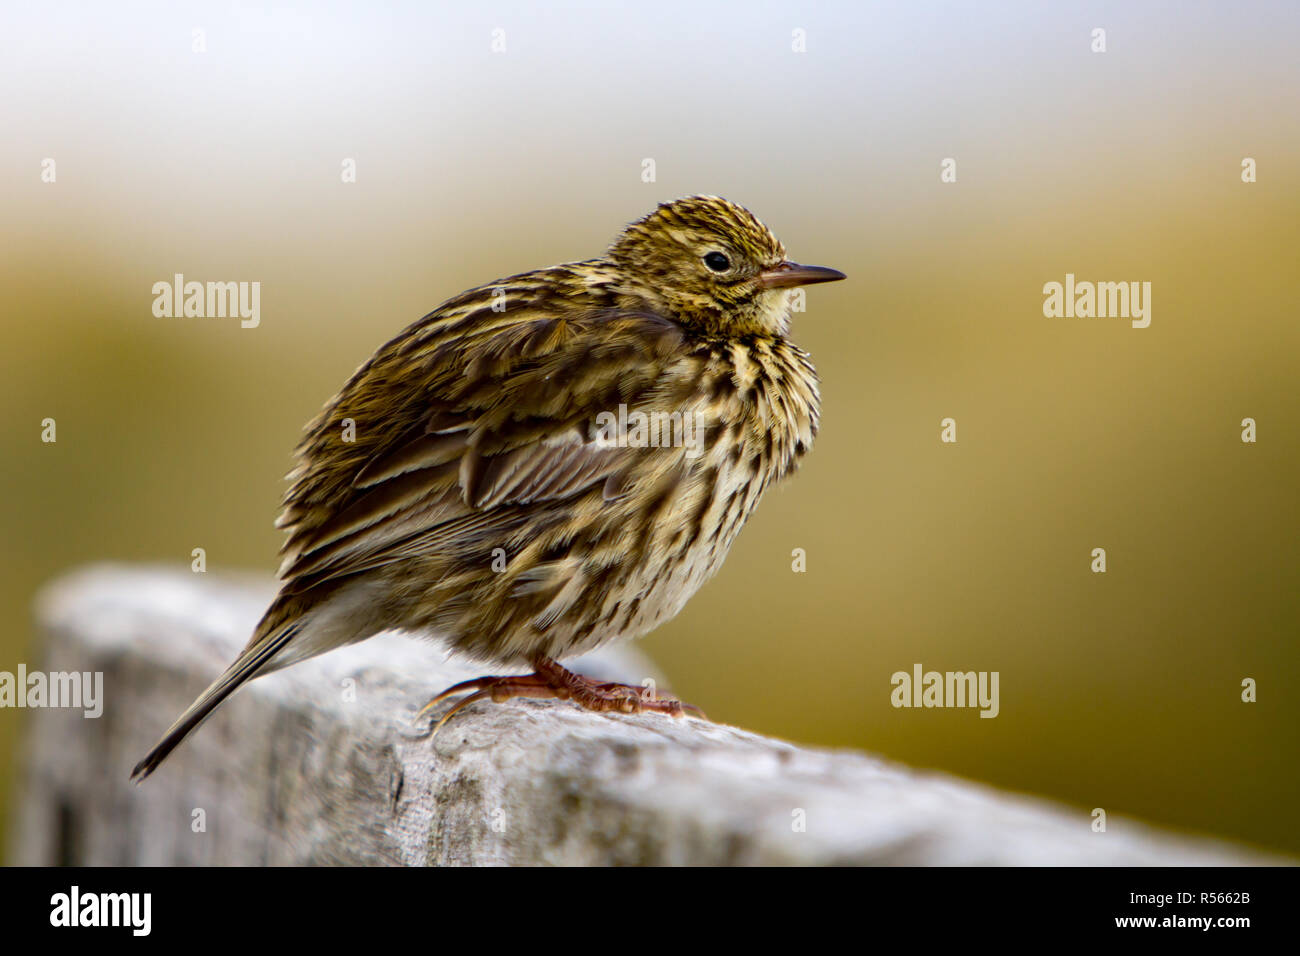 A South Georgia Pipit, the southernmost songbird in the world, only survives on rat free locations, here on Prion Island, South Georgia - Stock Image